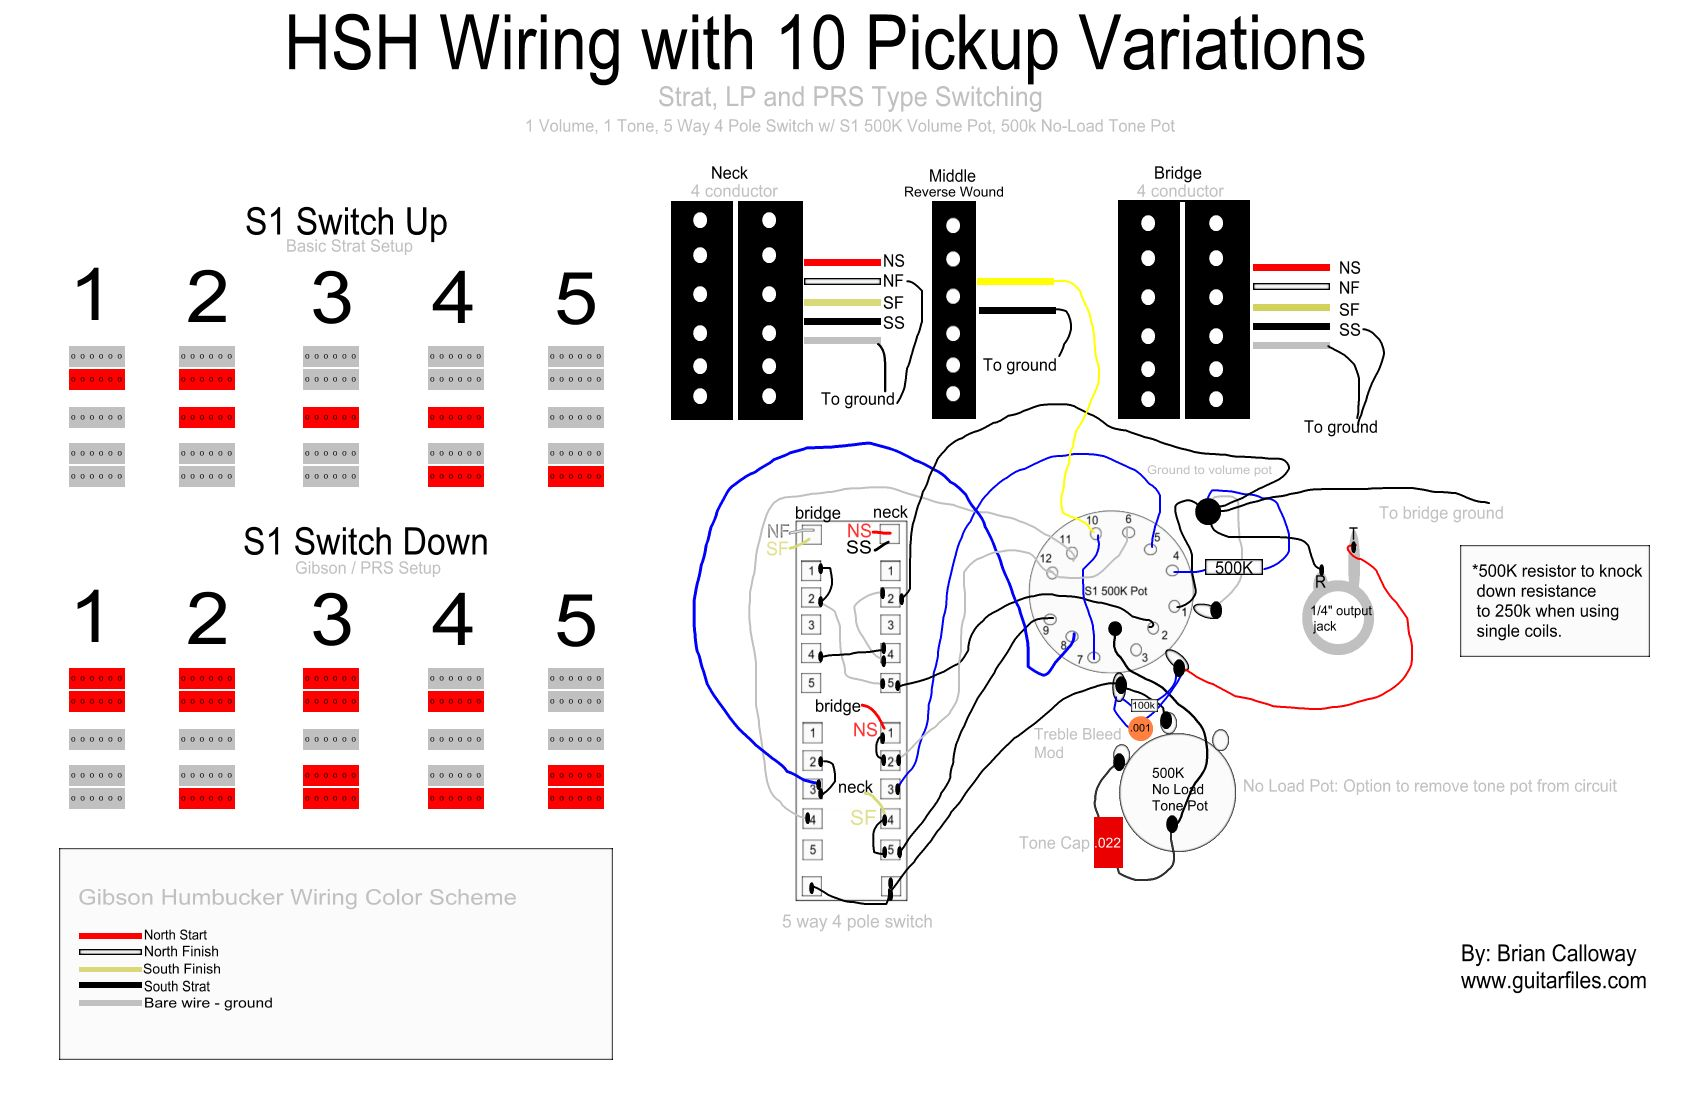 HSH Guitar Wiring 10 Pickup Combinations. 4 Pole Switch